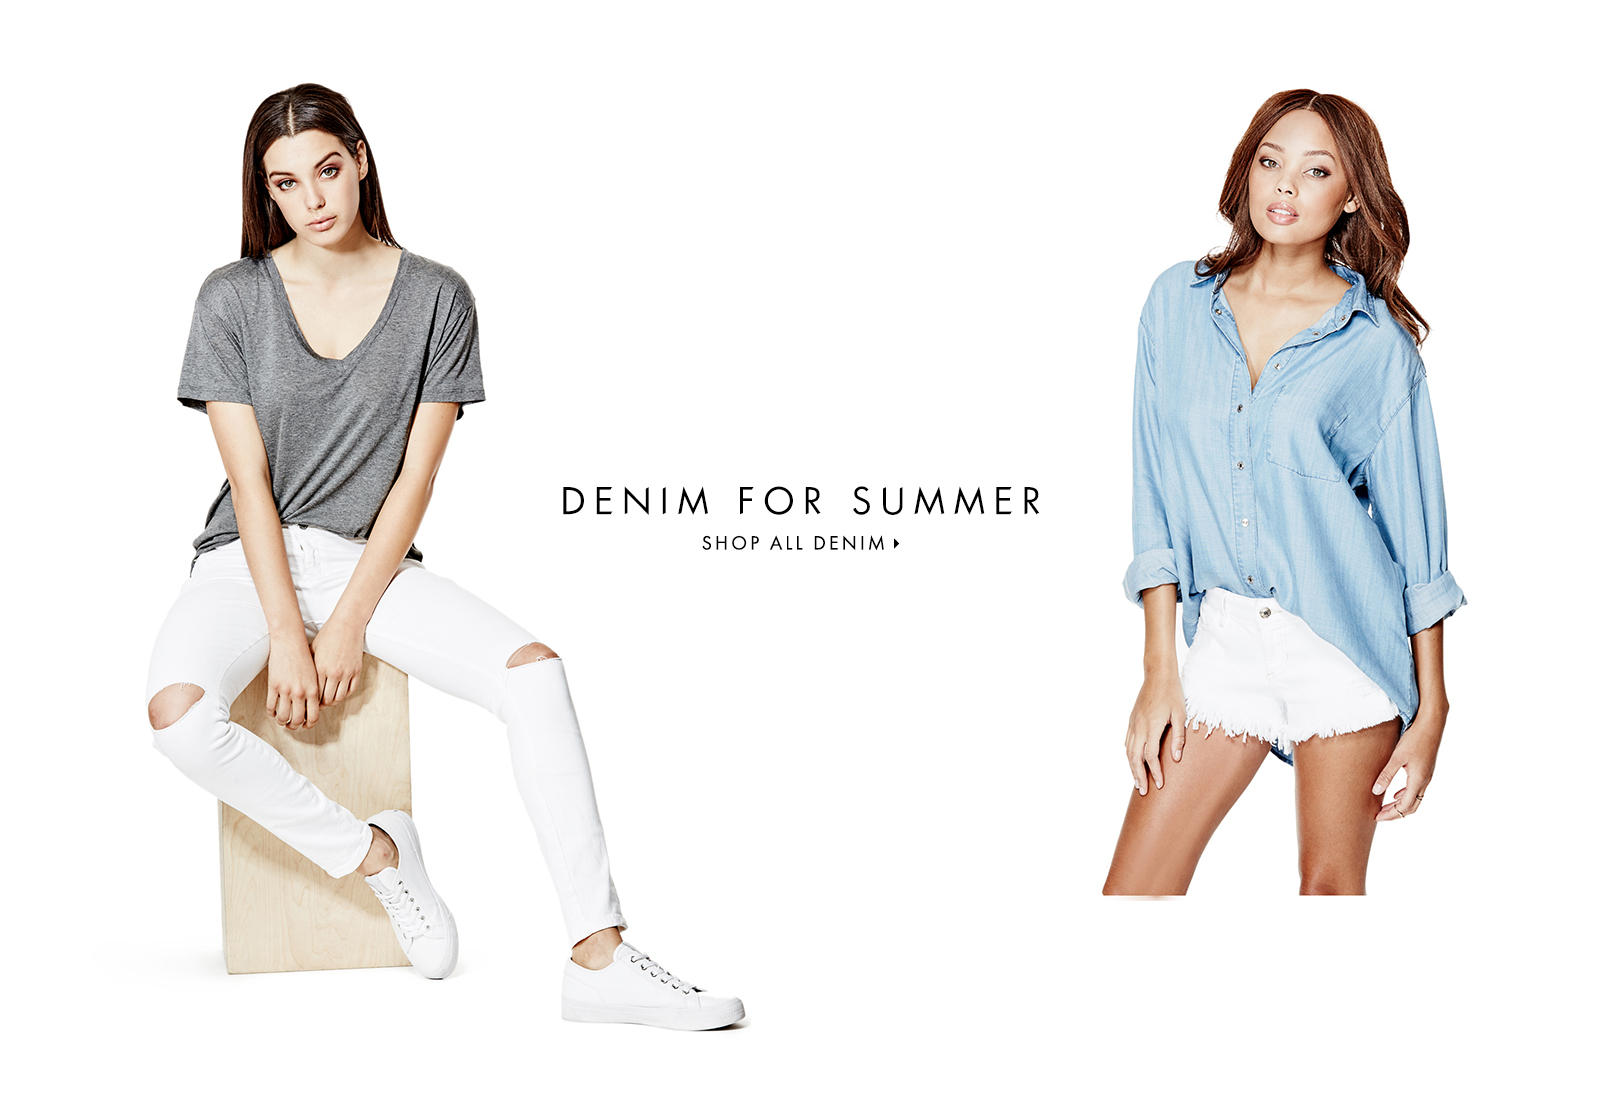 DENIM FOR SUMMER